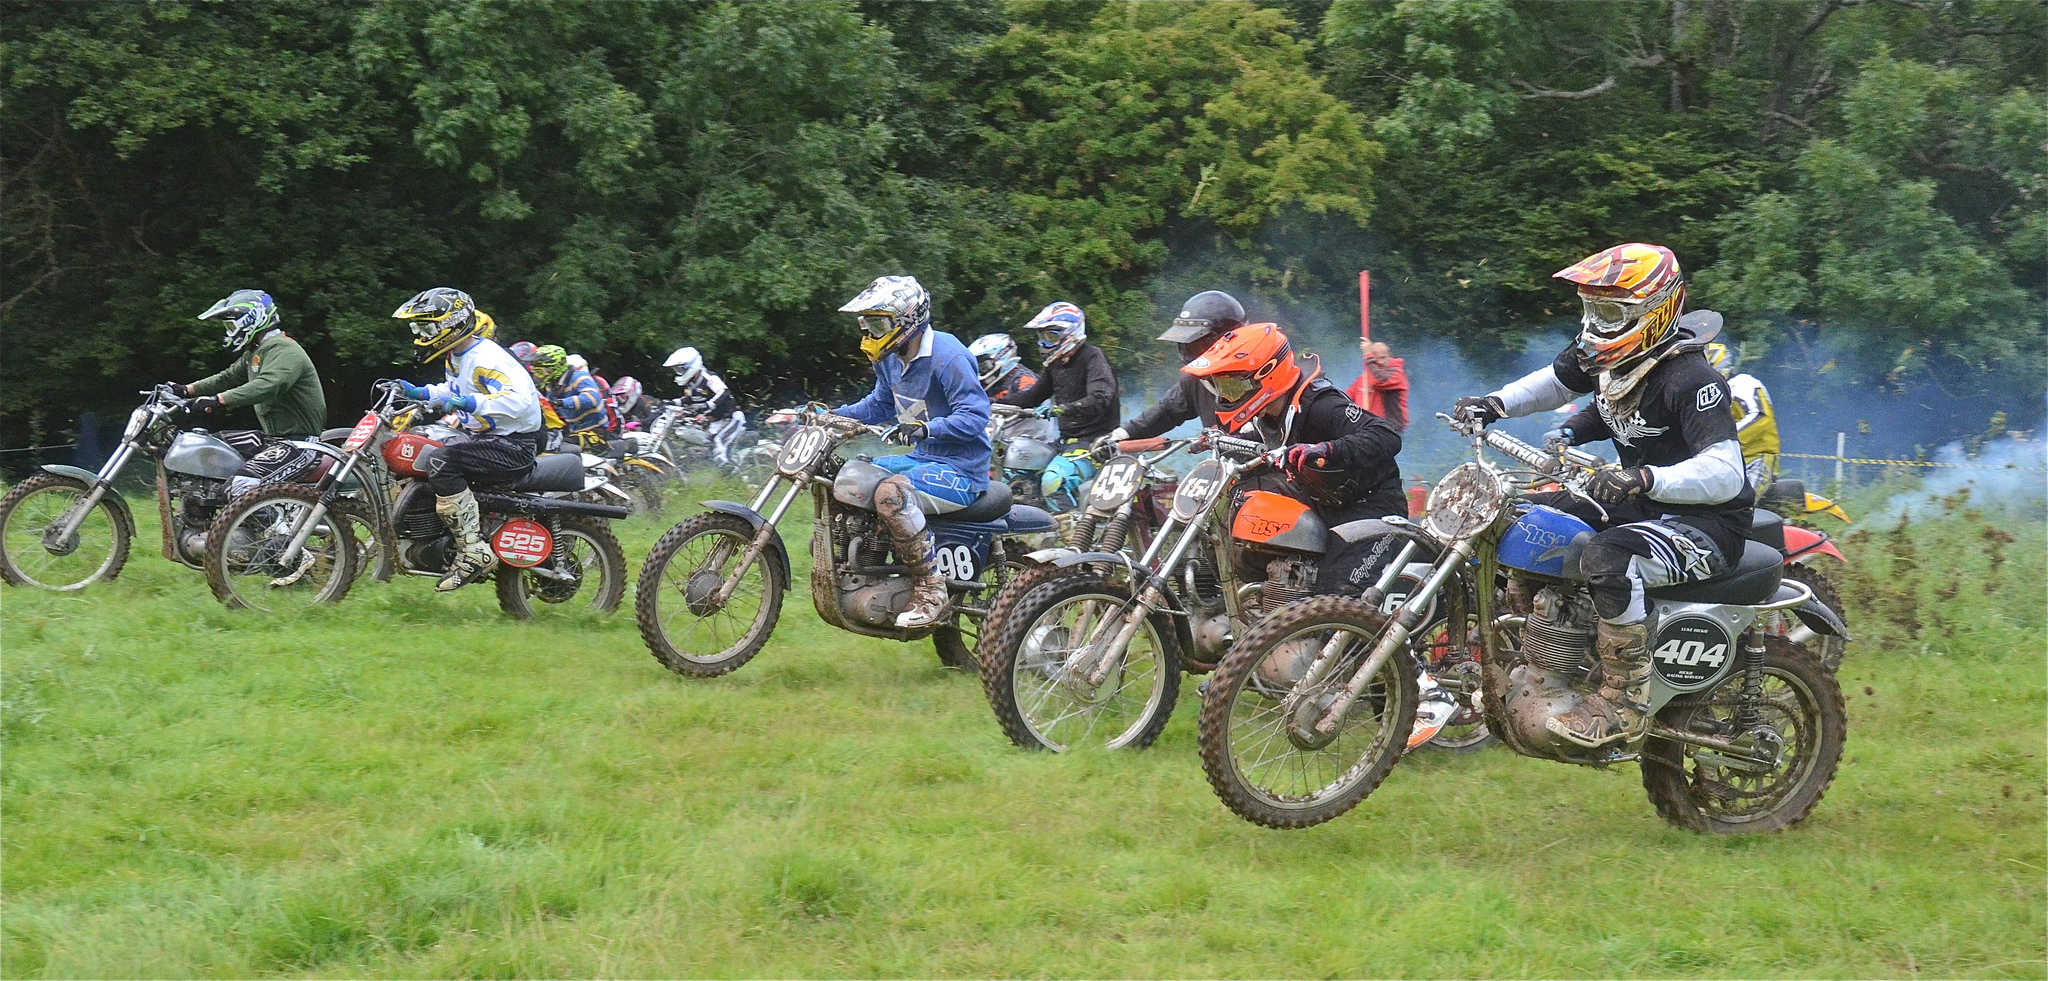 Llanthony Classic Scramble Photos September 2015 classicdirtbikerider.com..13